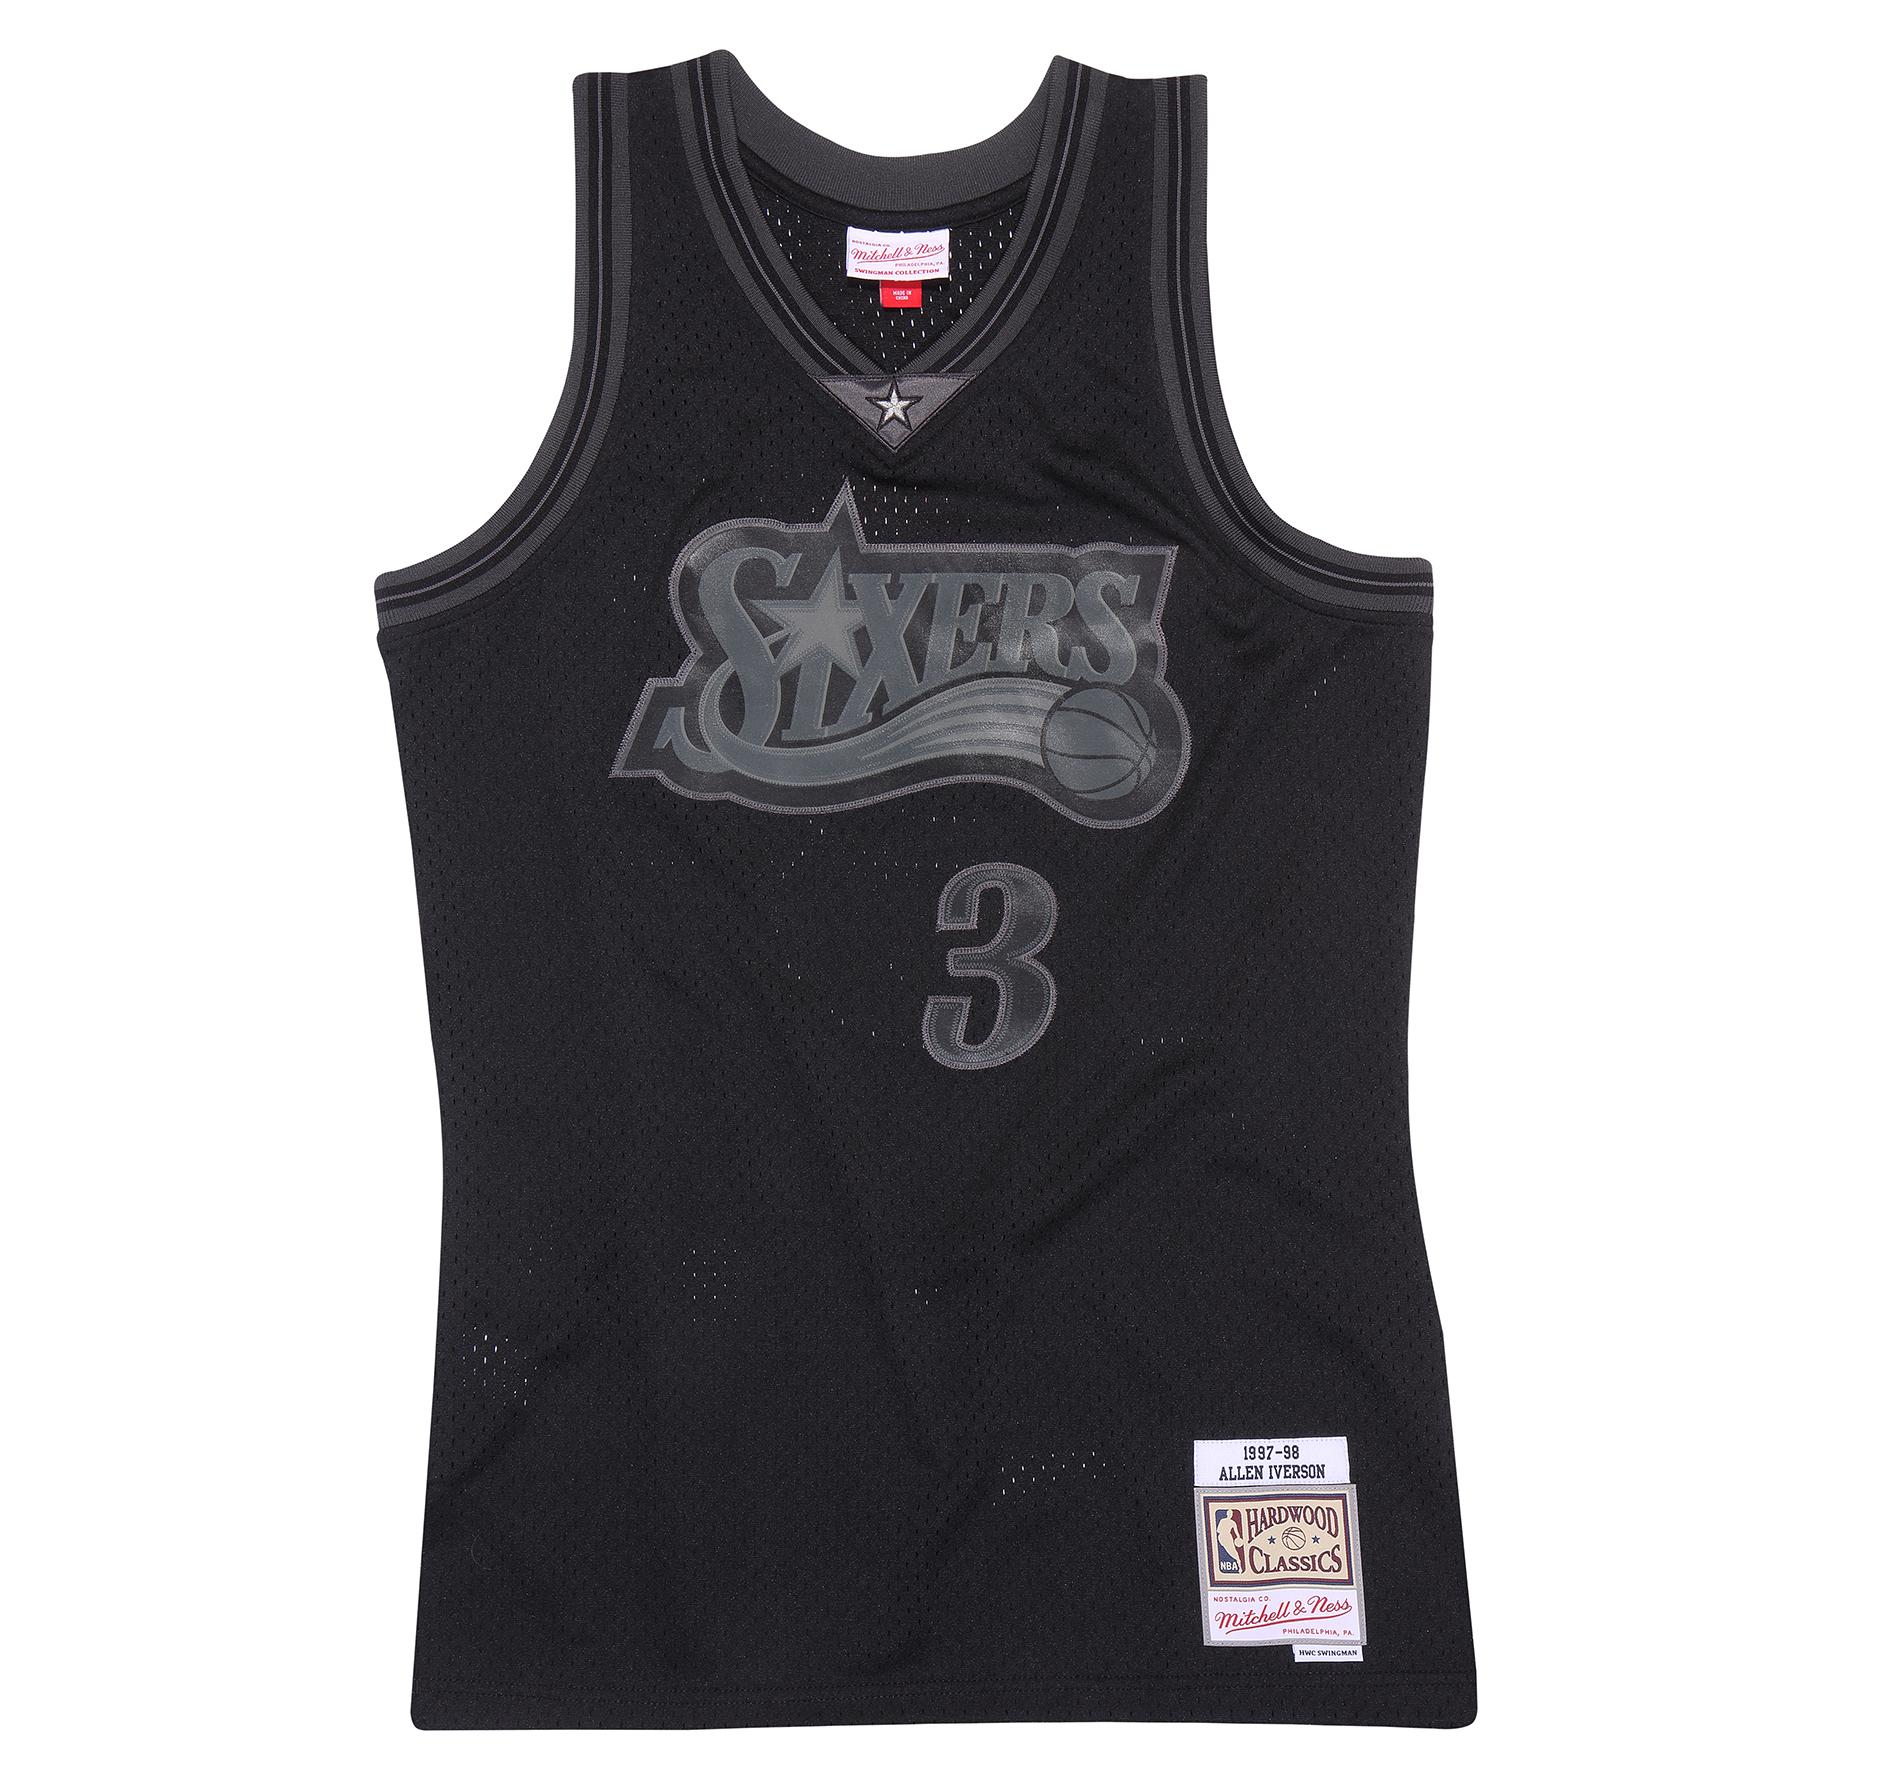 9b24961a9eea ... to Black Allen Iverson Swingman Jersey Our Price  £90.00 ...